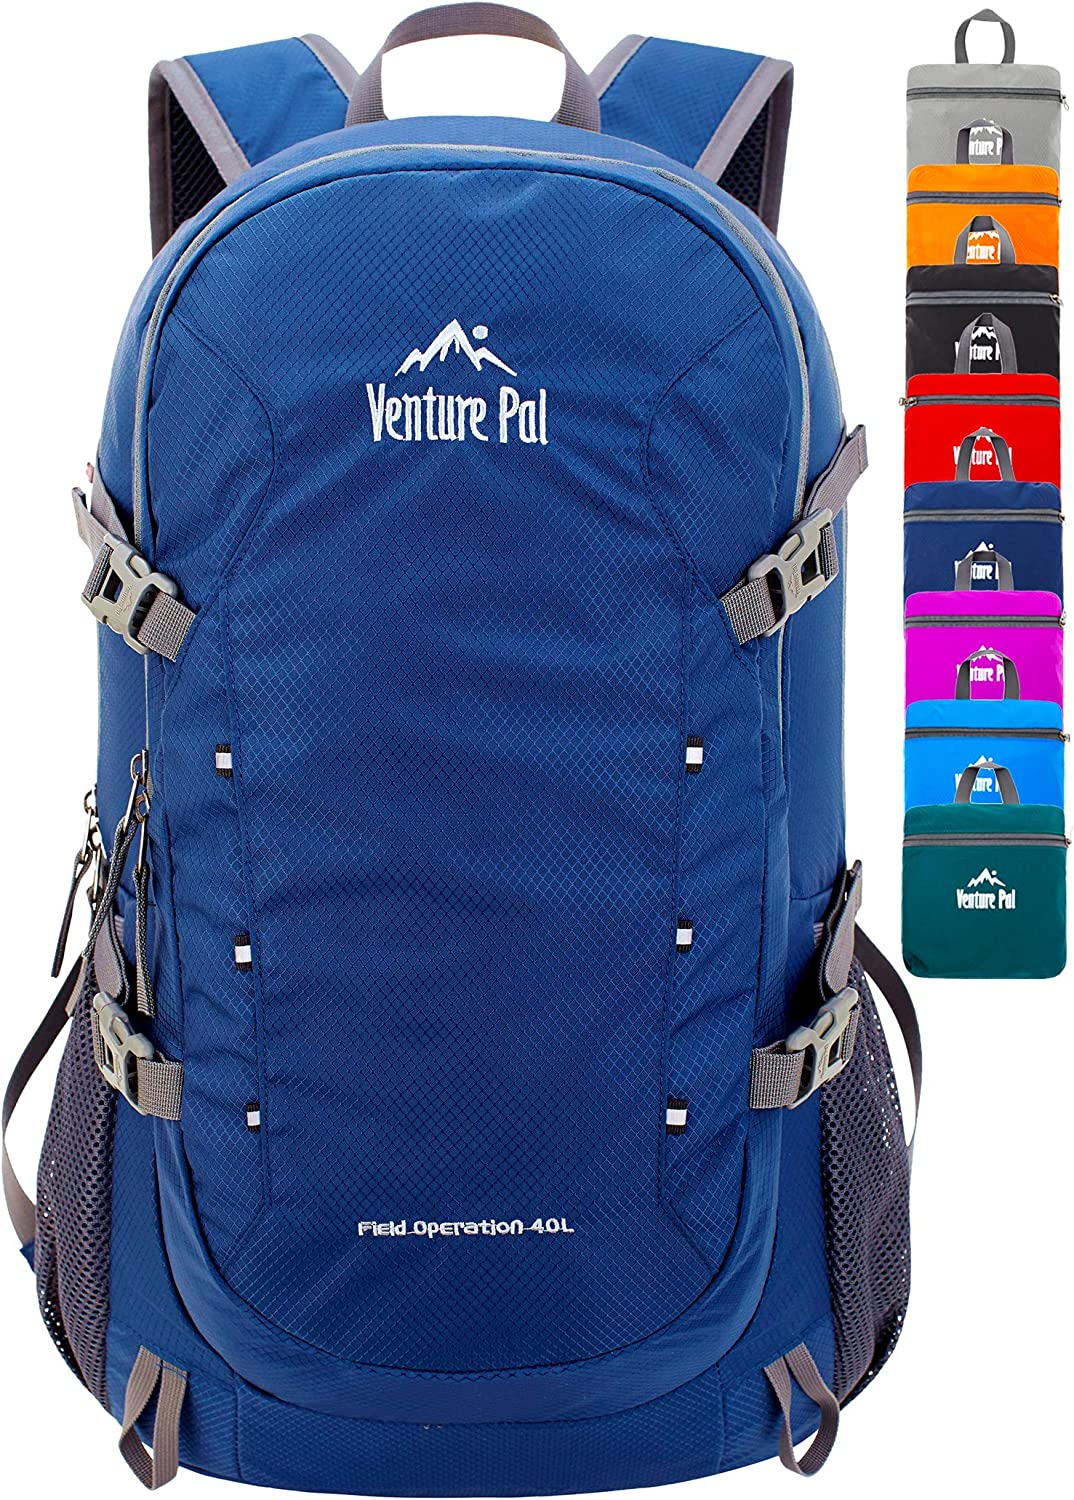 Venture Pal Topics on TV 40L Lightweight Packable Max 79% OFF Backpack Hiking Dayp Travel